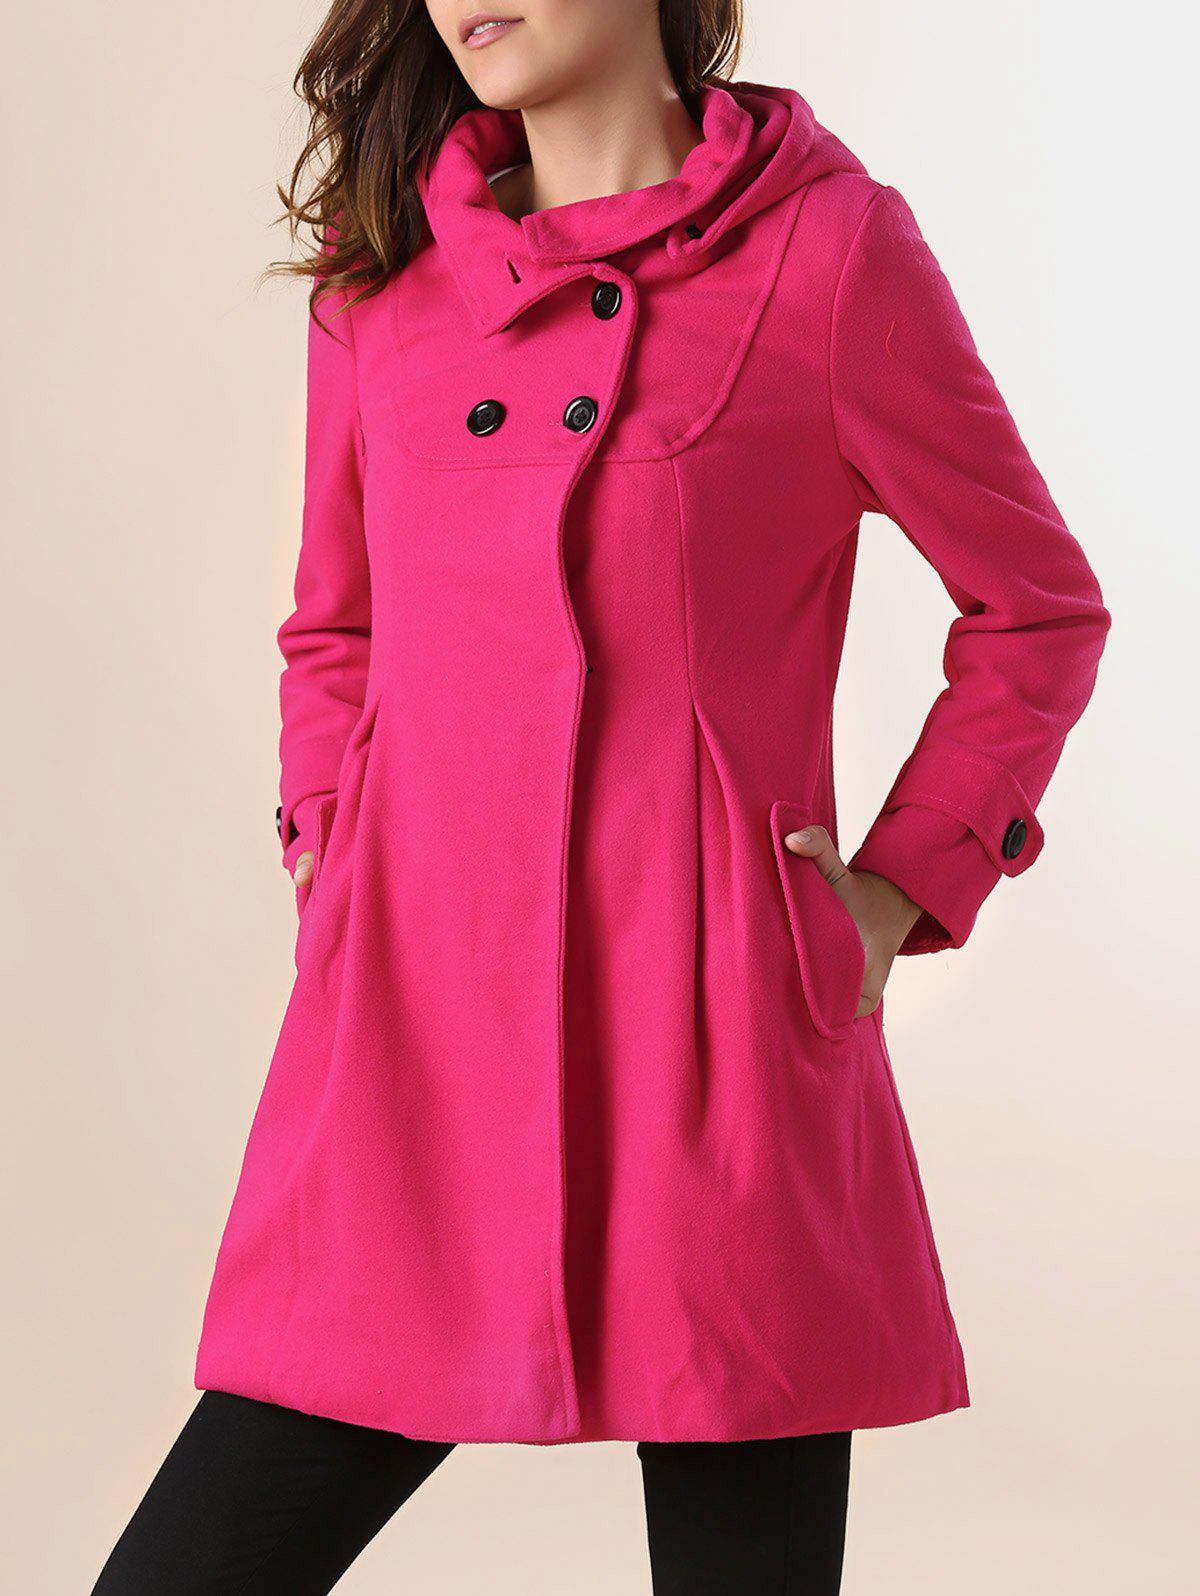 Stylish Hooded Collar Solid Color Double-Breasted Long Sleeve Woolen Coat For Women - PLUM XL